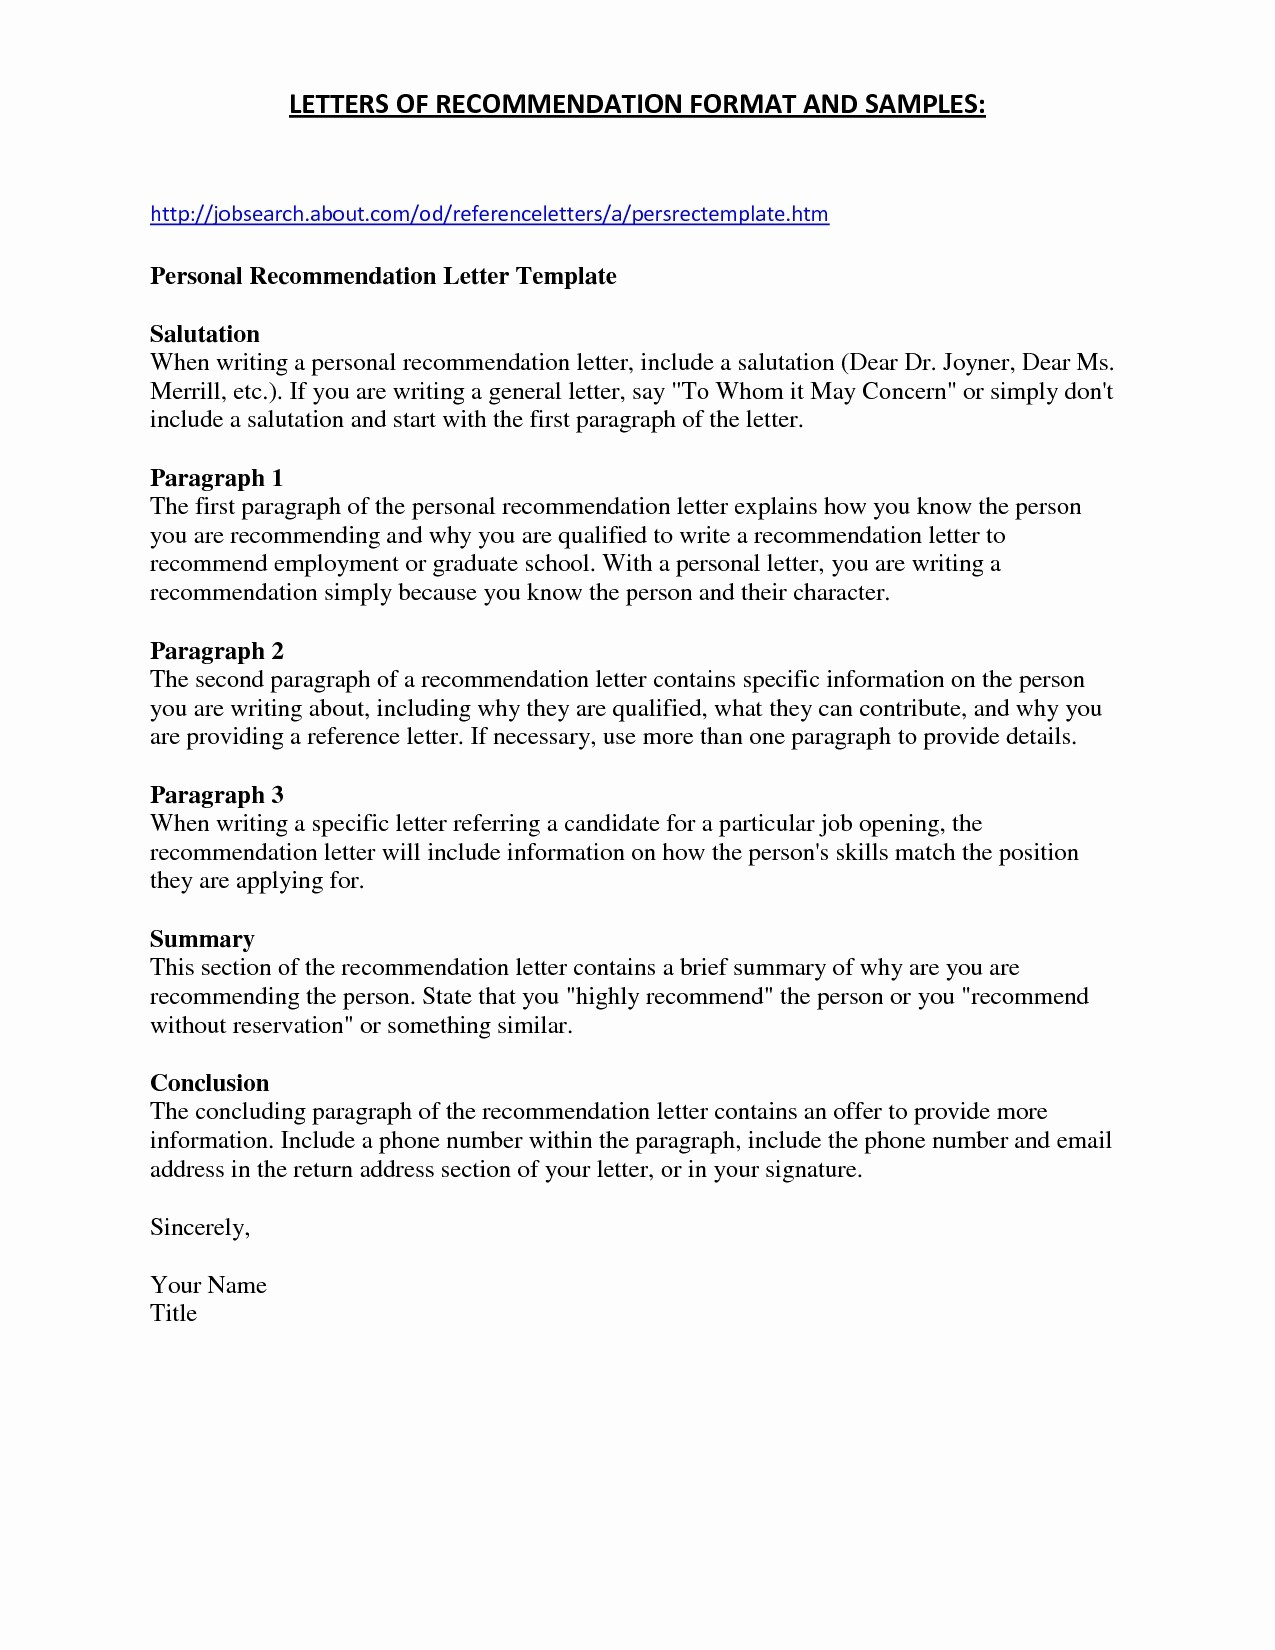 Business Plan Letter Template - Business Brief Template Fresh Business Plan for Personal Care Home